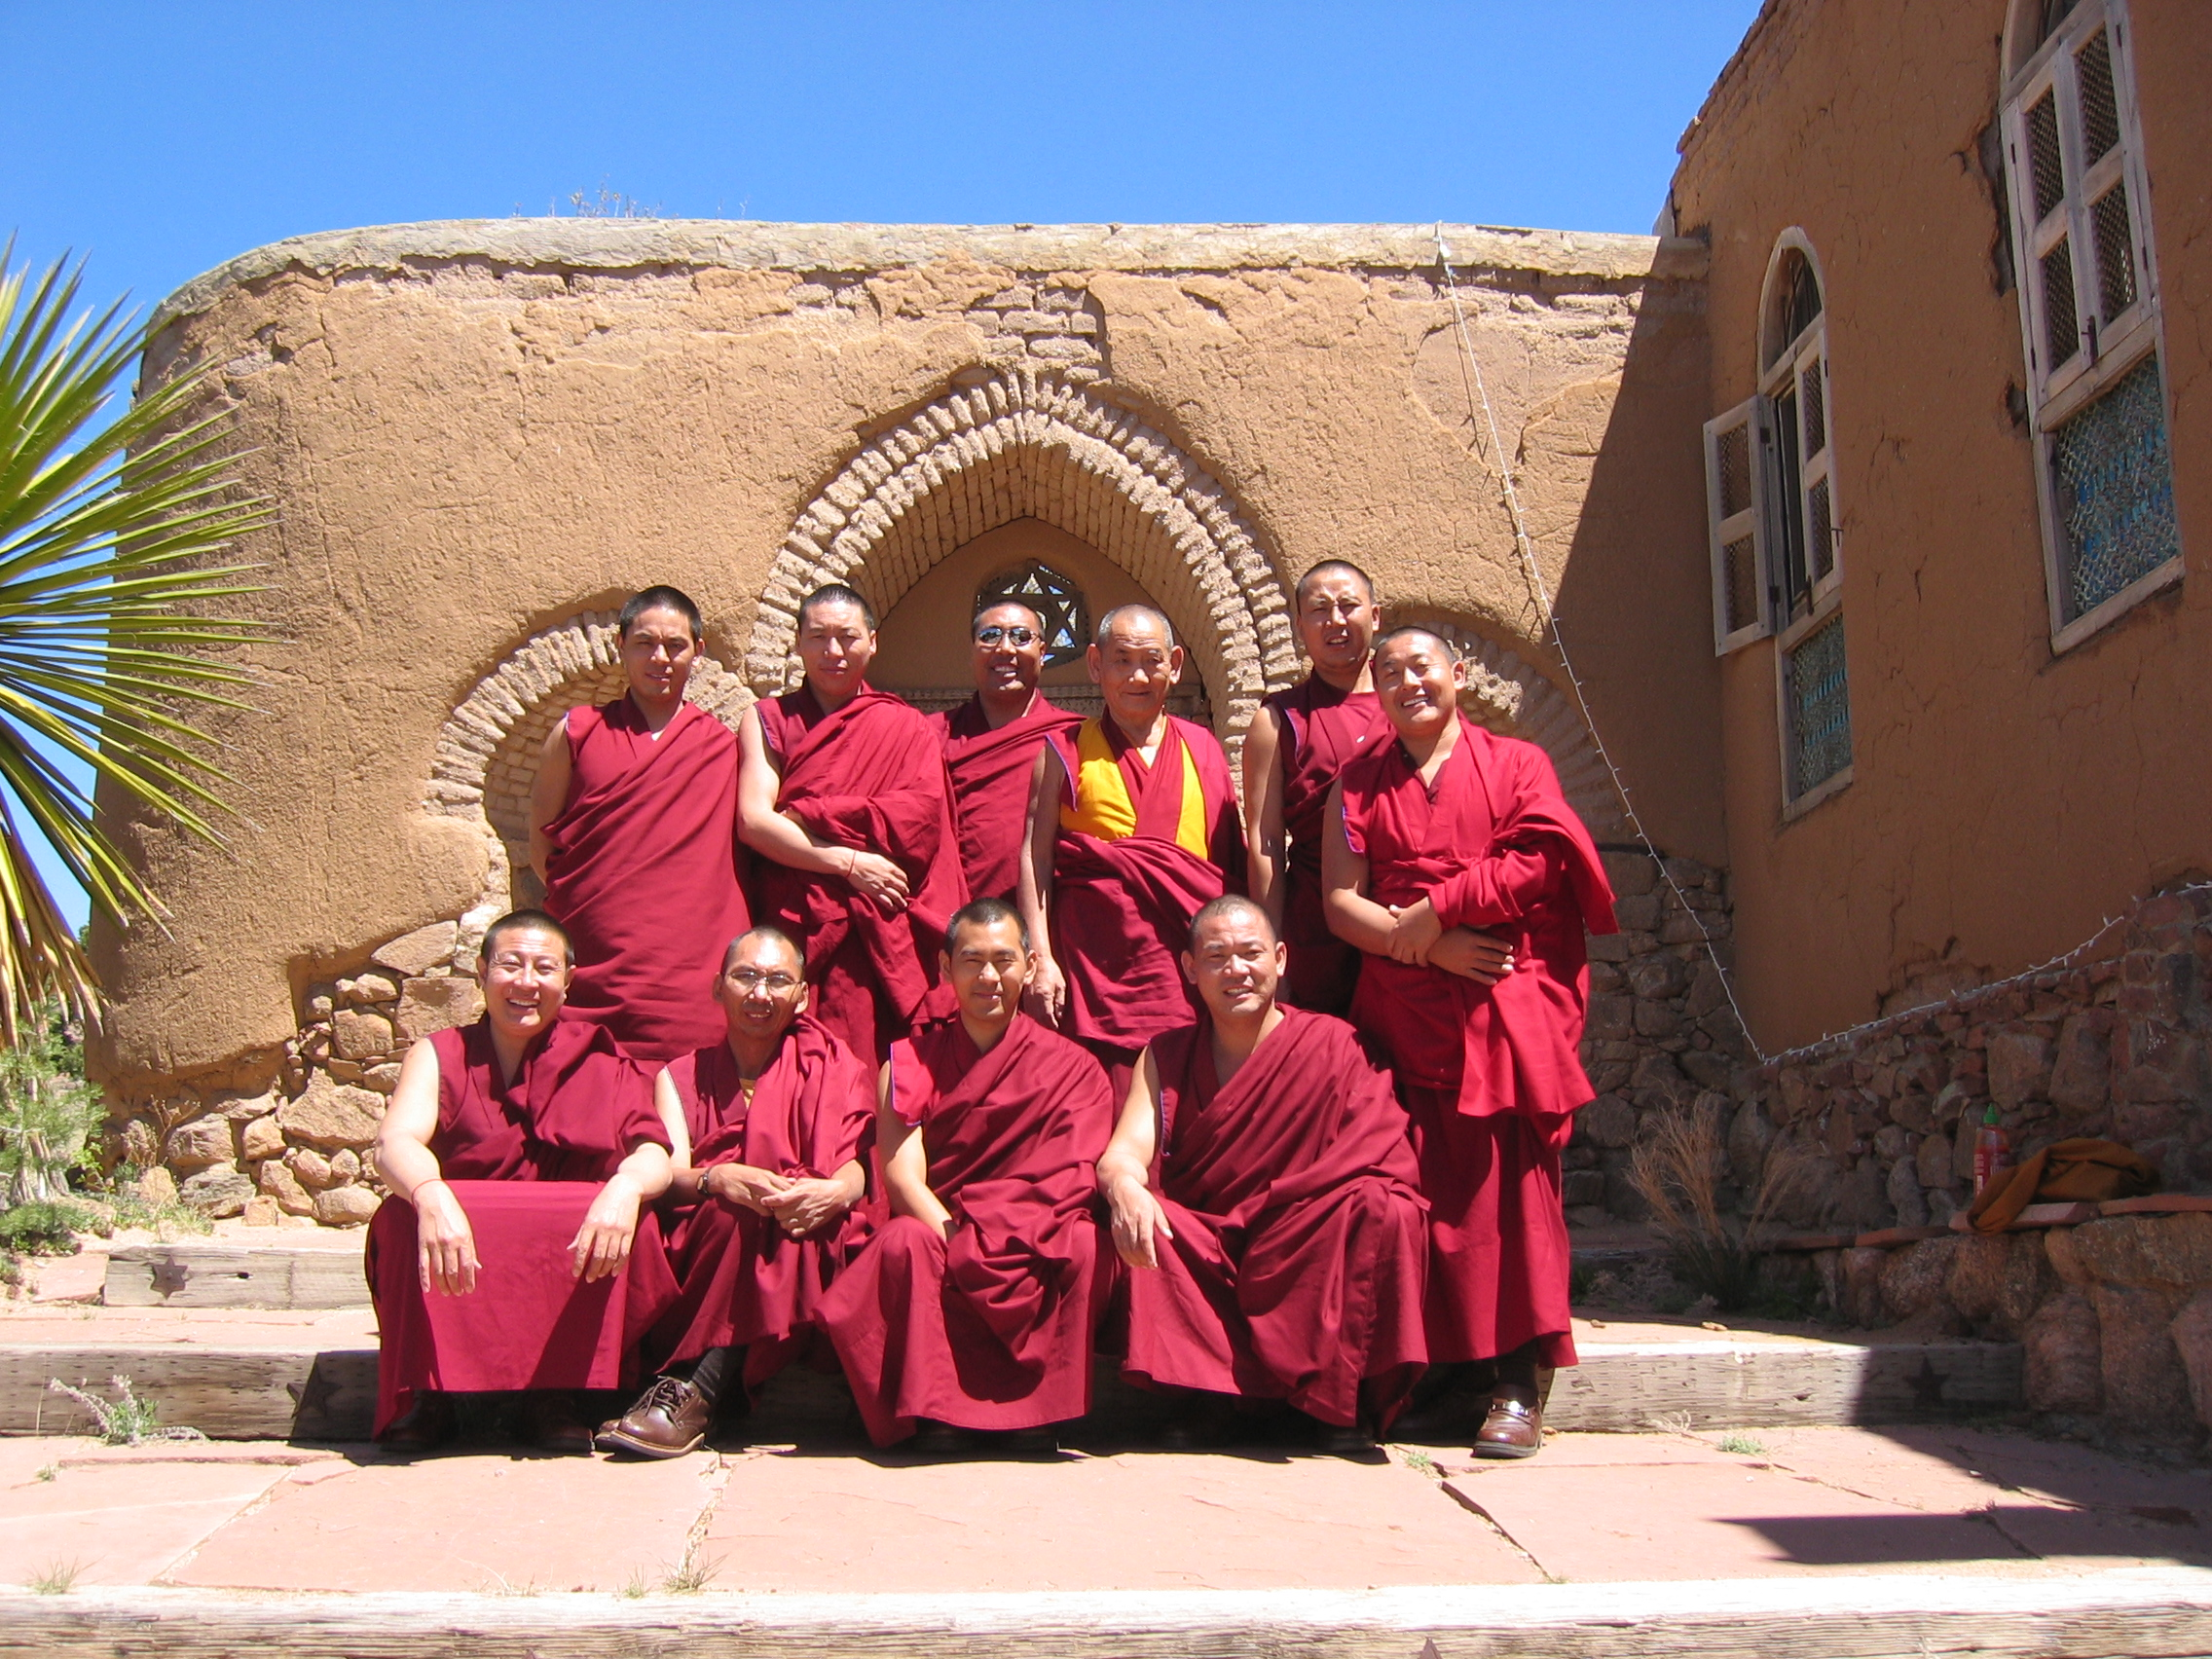 Monks from the Drepung Loseling Monastery pose for a photo after preforming a house blessing, Santa Fe, NM.